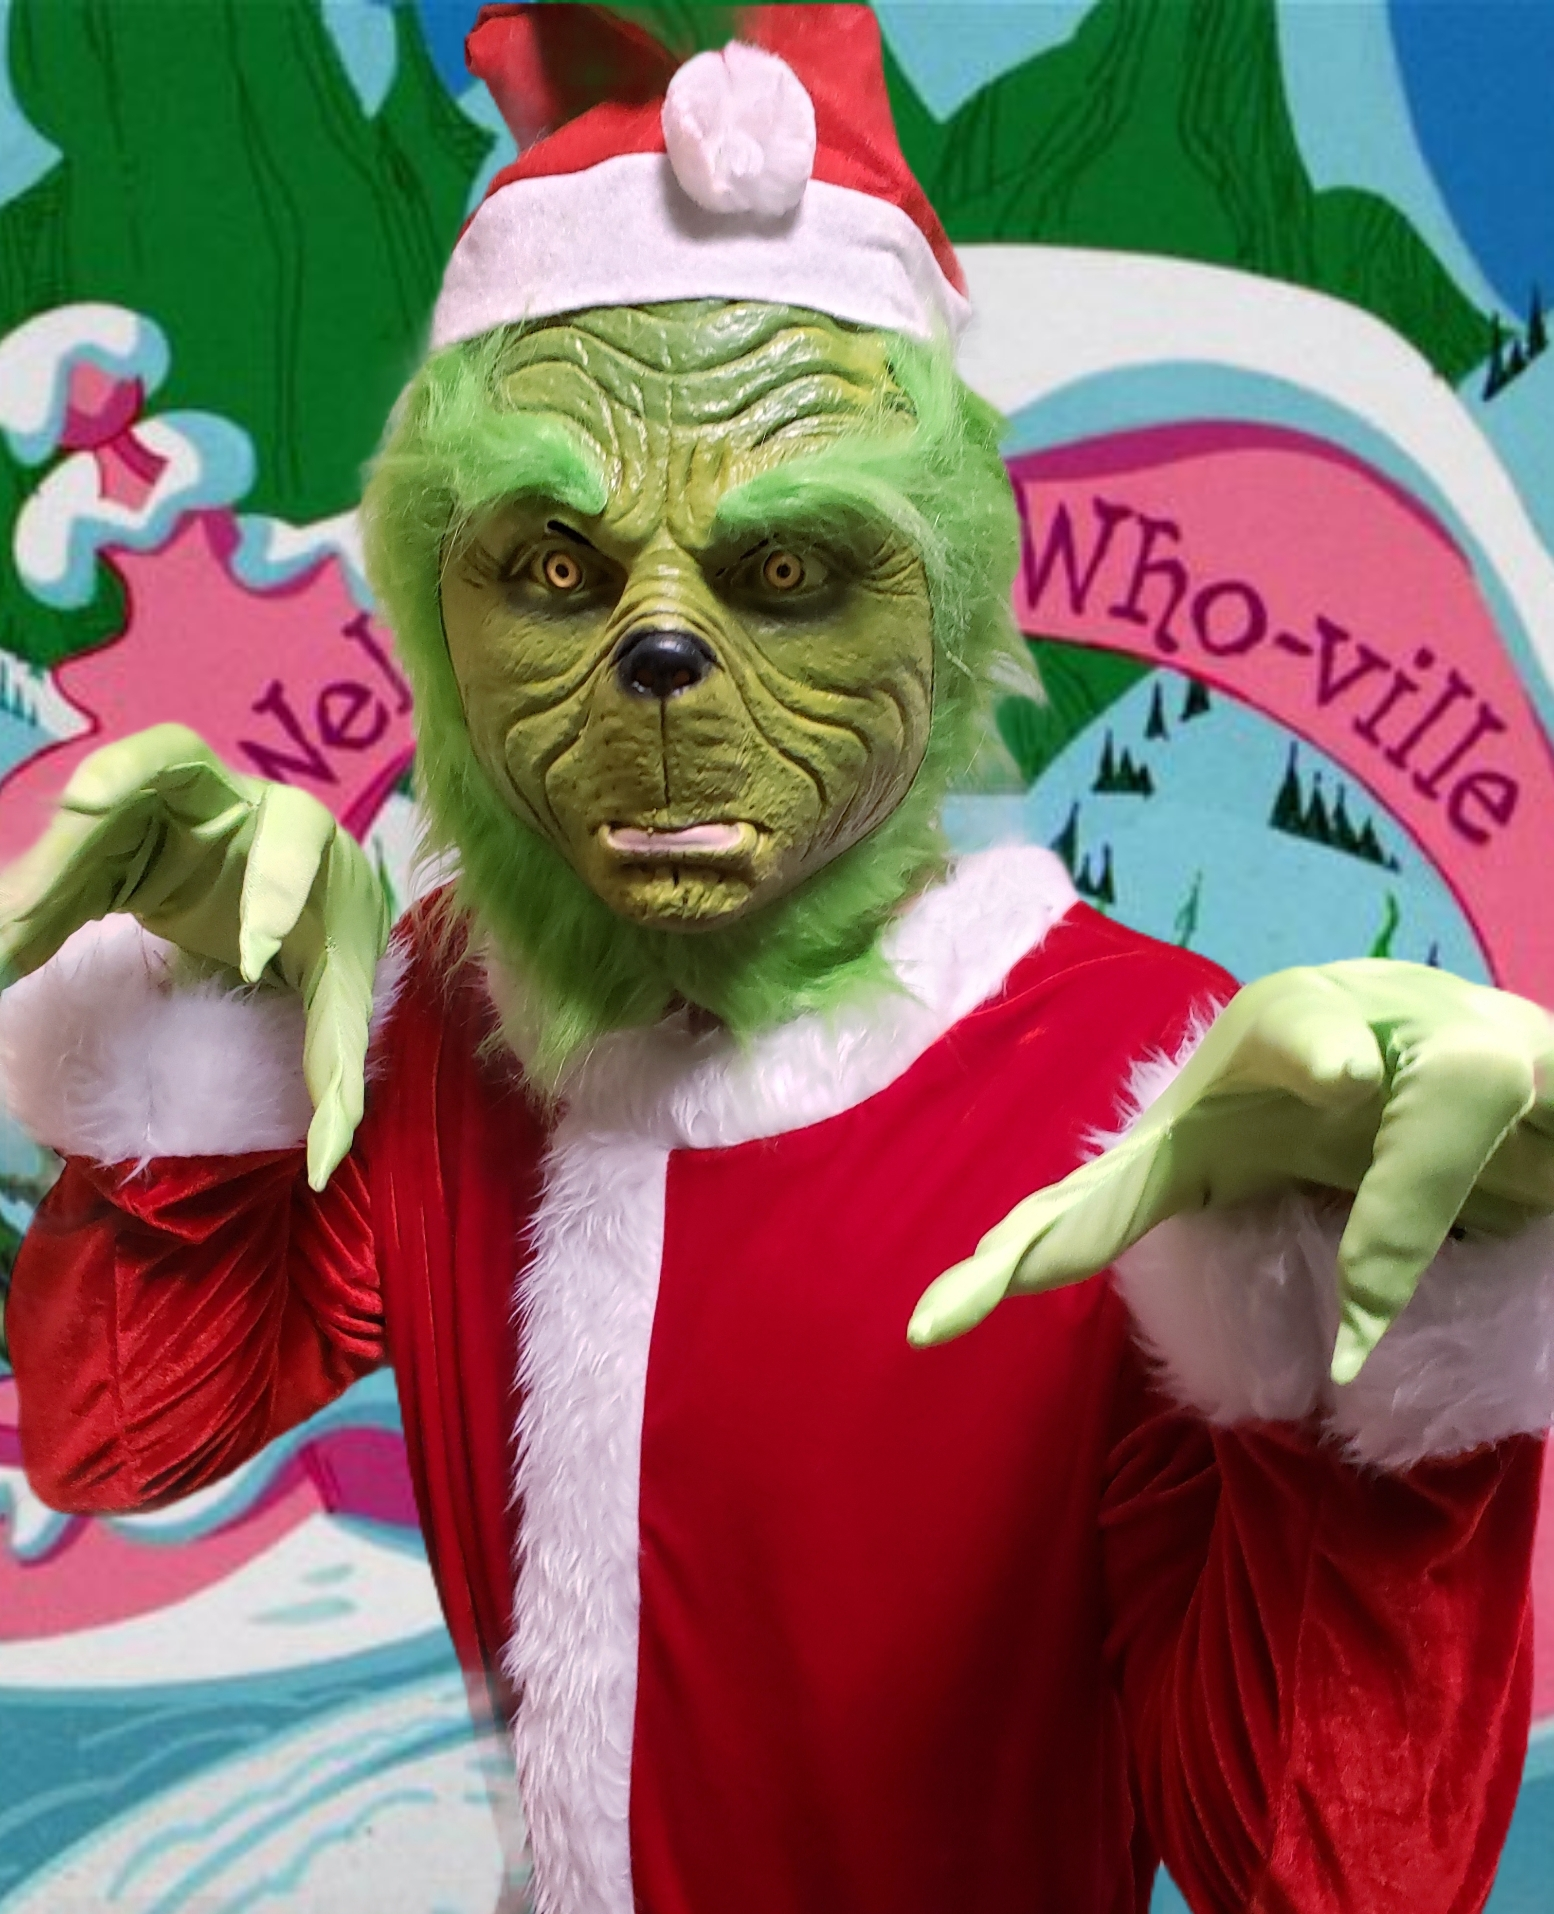 The Grinch in Who-ville